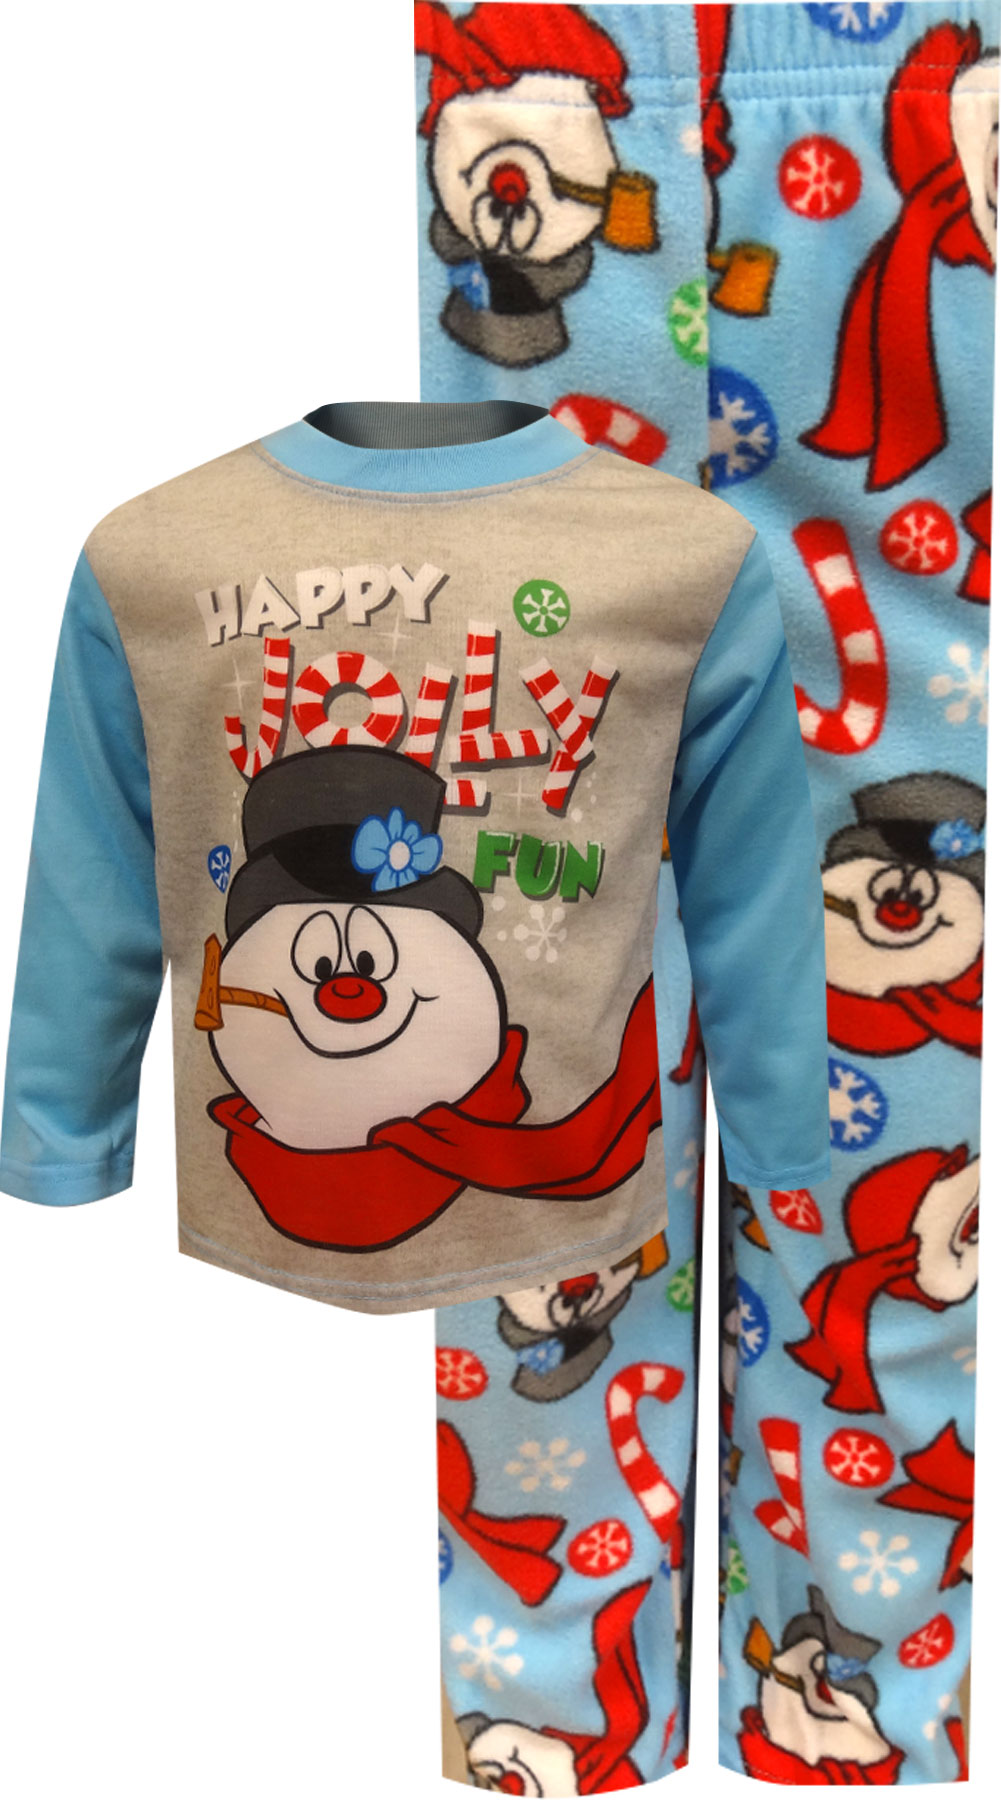 Image of Happy Jolly Fun Frosty The Snowman Pajamas for Toddlers